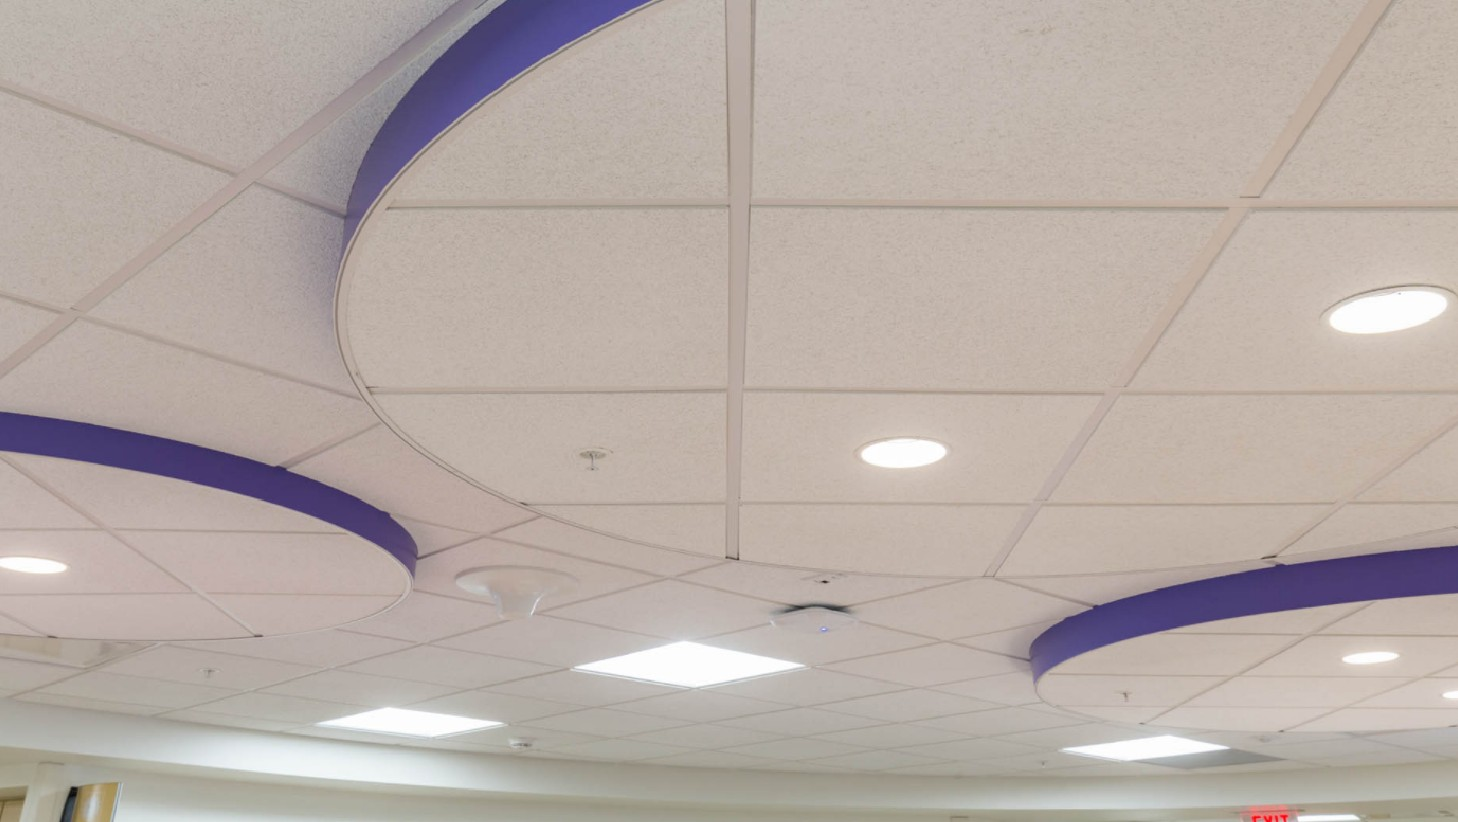 Have You Ever Looked At A Hospitals Ceilings Venture Insurance Group Let Us Help Find Your Answers Now So That Youre Not Wondering About The While Looking Hospital Ceiling